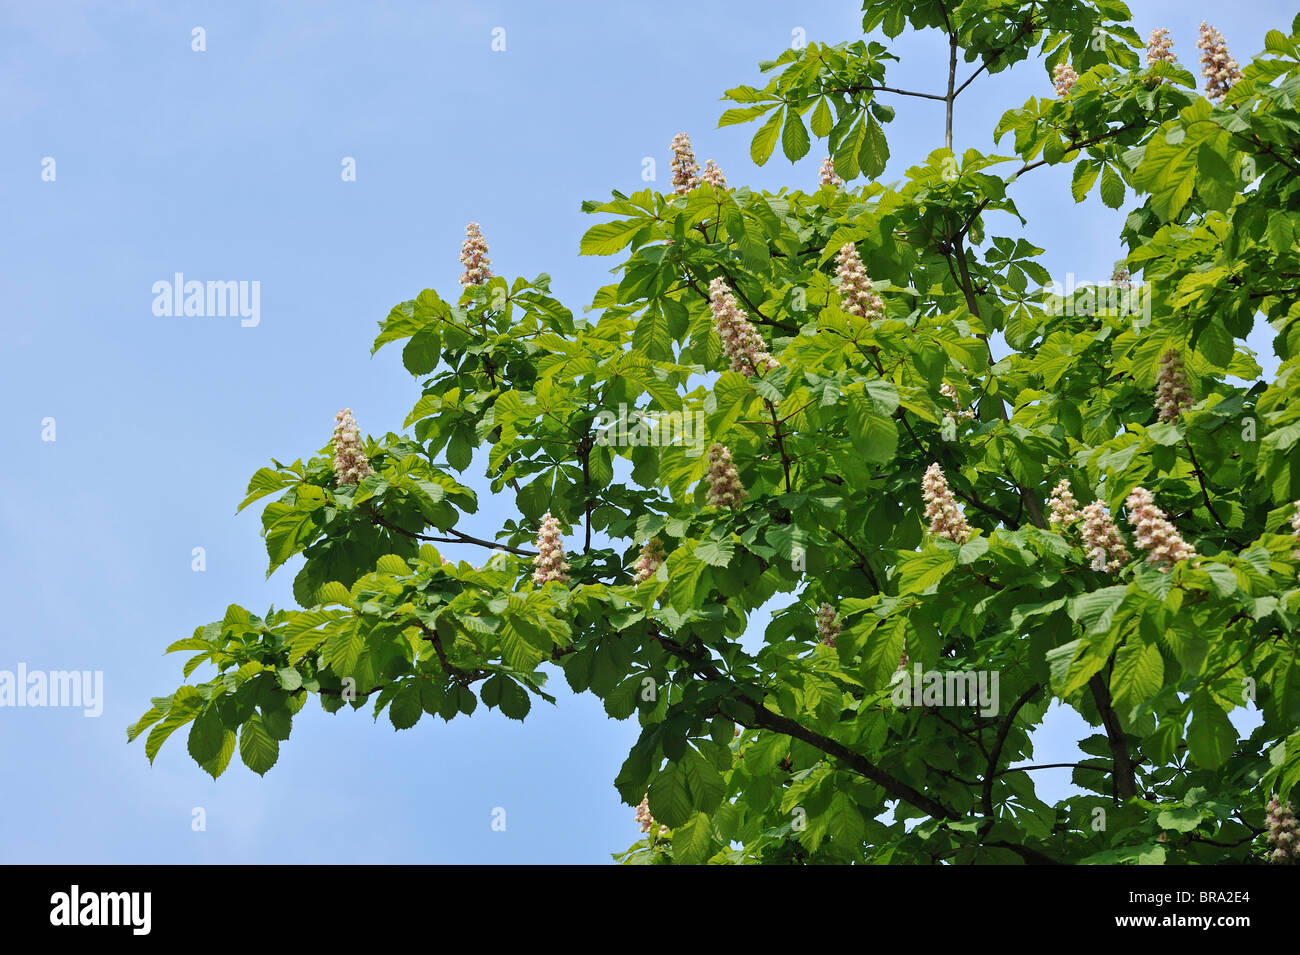 Horse-chestnut / Conker tree (Aesculus hippocastanum) showing foliage and flowers in spring, Belgium - Stock Image